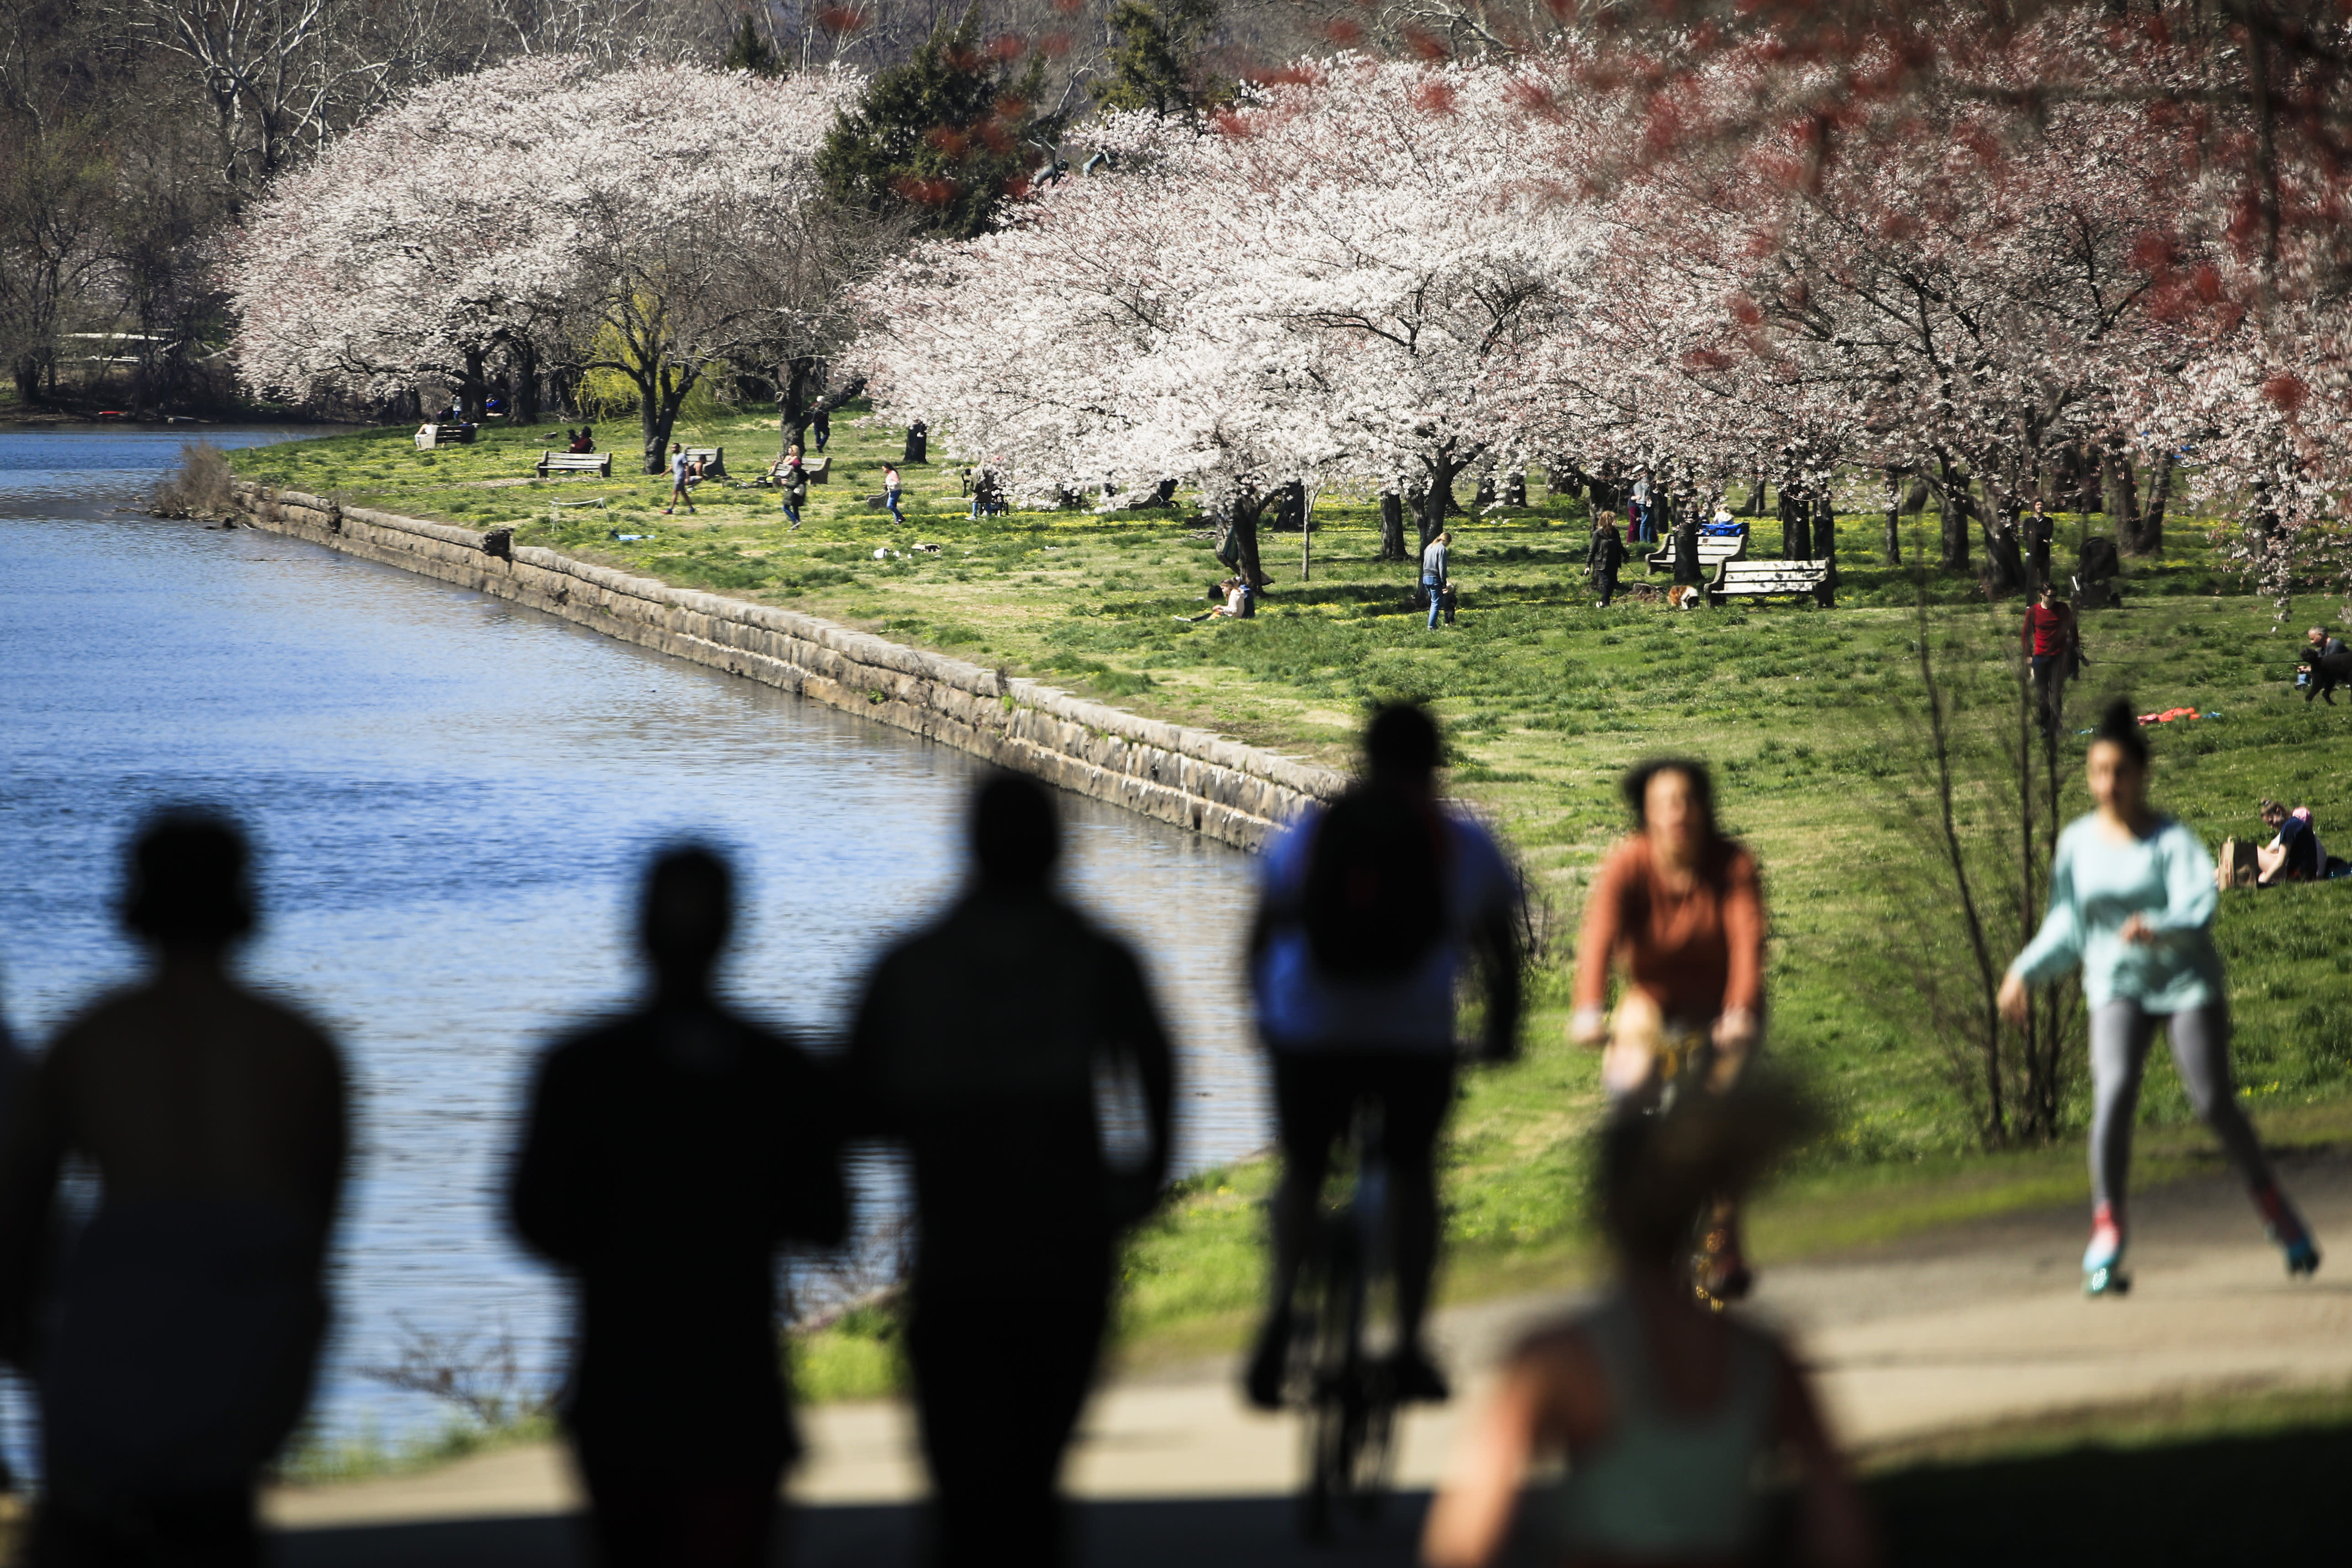 FILE - In this March 26, 2020, file photo, people exercise on the trail along Kelly Drive in Philadelphia. For millions of seasonal allergy sufferers, the annual onset of watery eyes and scratchy throats is bumping up against the global spread of a new virus that produces its own constellation of respiratory symptoms. That's causing angst for people who suffer from hay fever and are now asking themselves whether their symptoms are related to their allergies or the new coronavirus. (AP Photo/Matt Rourke, File)